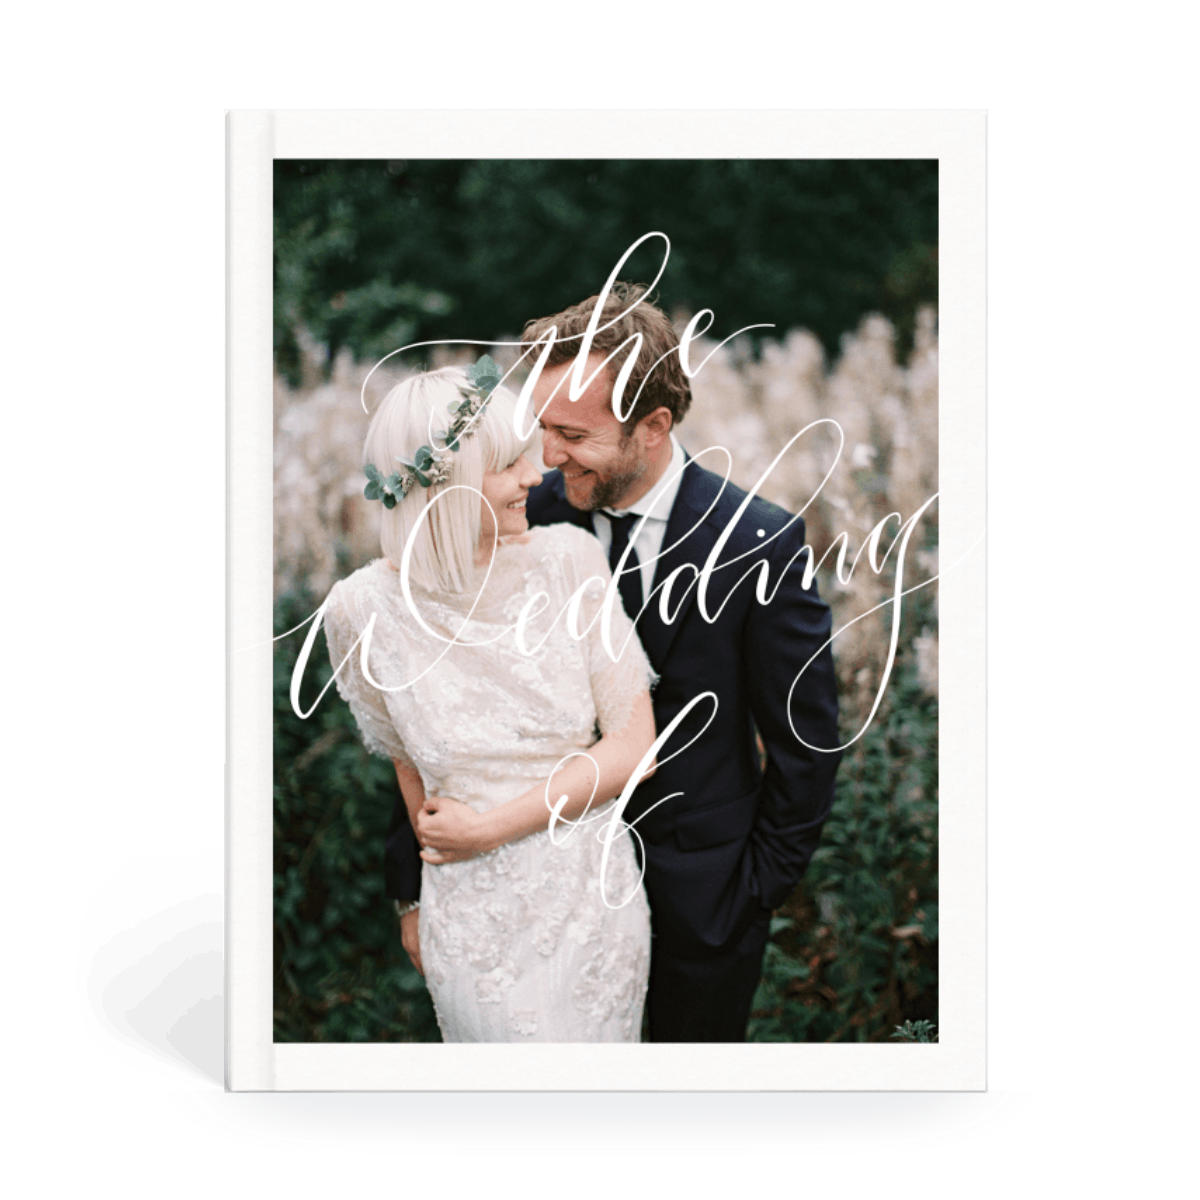 Https%3a%2f%2fwww.papier.com%2fproduct image%2f53259%2f39%2fthe wedding of 12834 front 1541758562.png?ixlib=rb 1.1